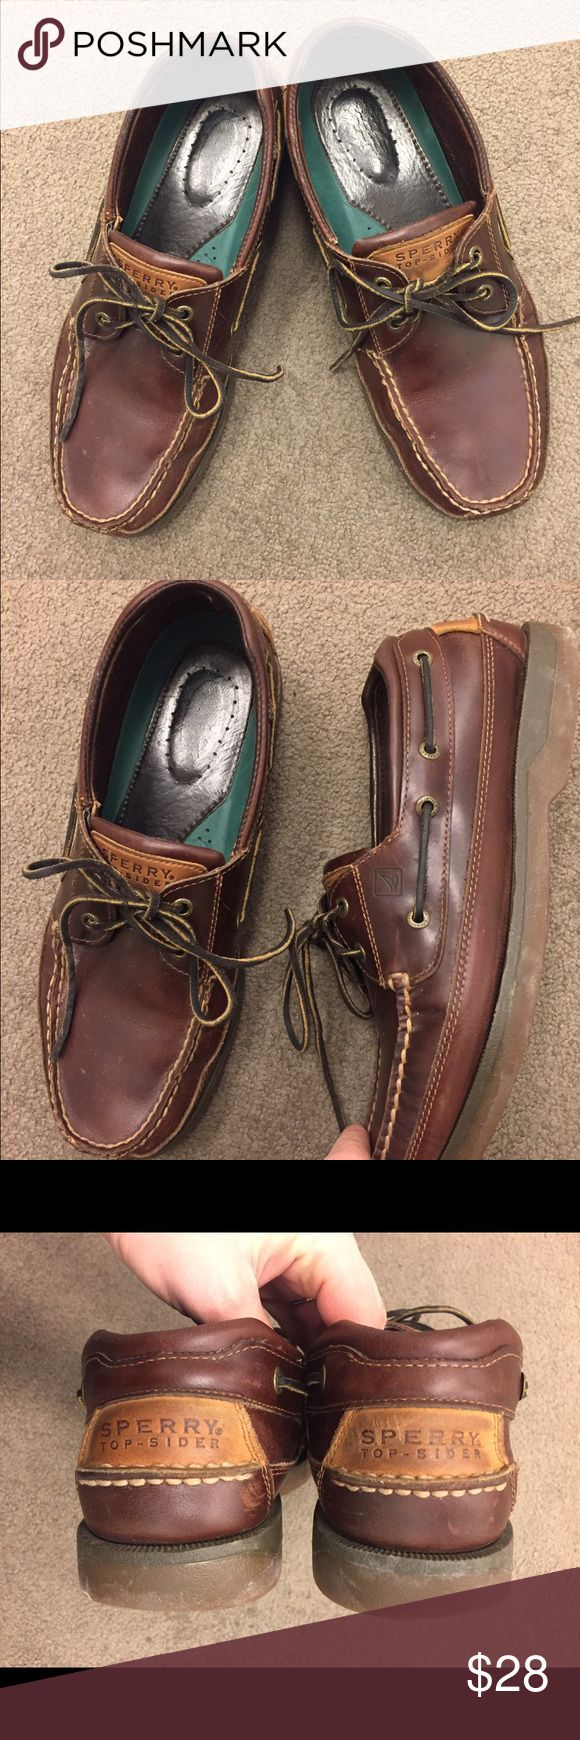 Sperry Topsider Brown Leather Men's Boat Shoes Dark brown leather men's Sperry Topsider boat shoes in a size 10.5 Wide. They are in very good condition other than some marks to the leather. #sperry #sperrytopsiders #brown #leather #shoefie #mens Sperry Top-Sider Shoes Boat Shoes